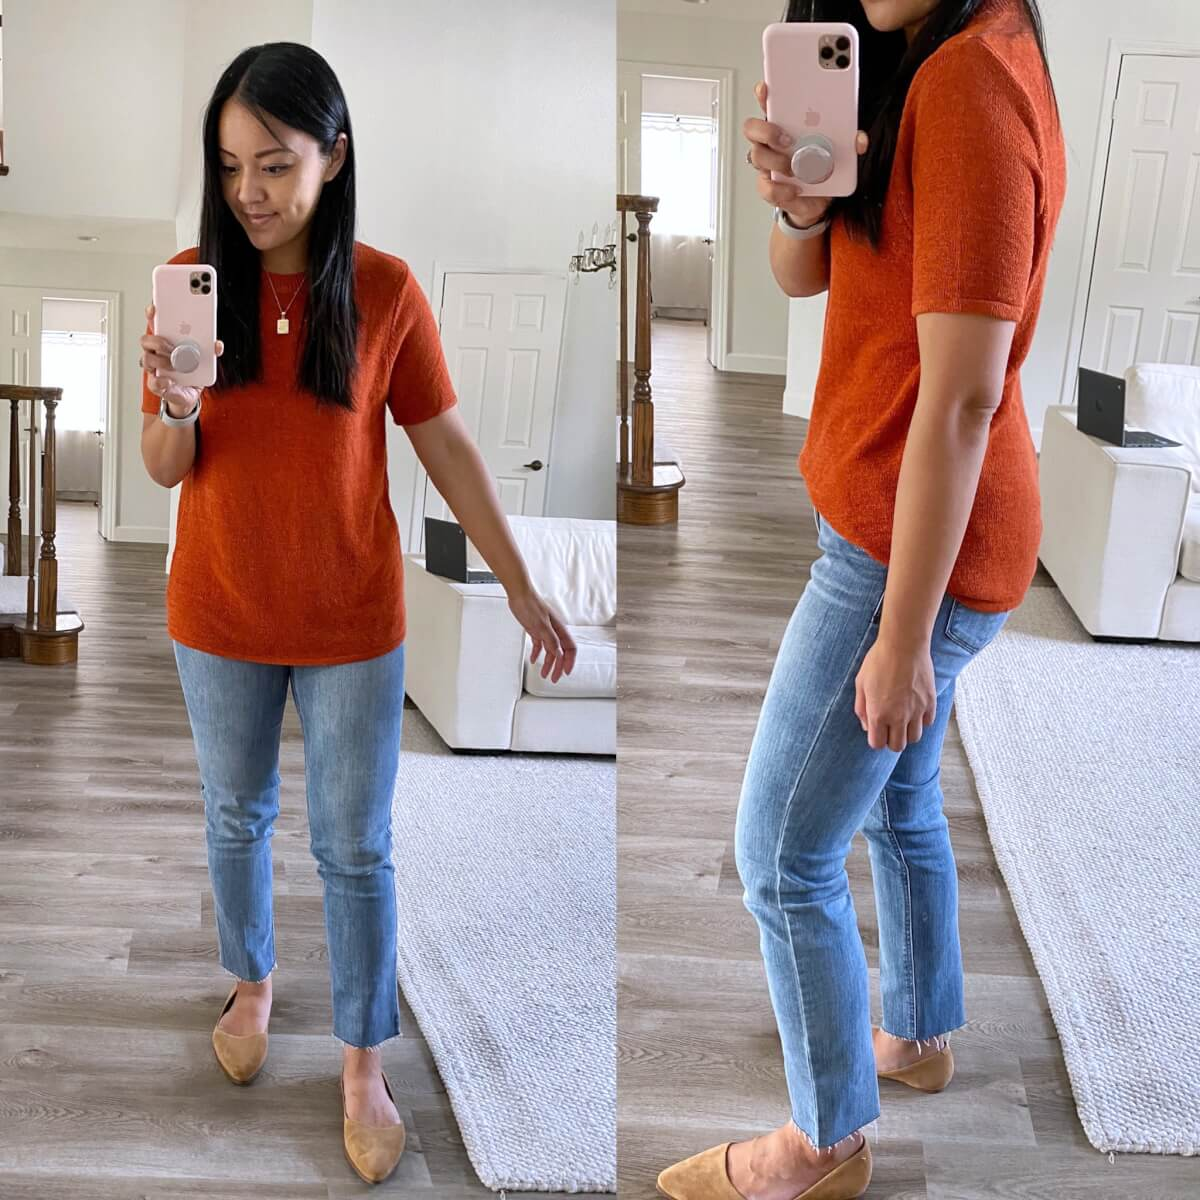 Nicer Casual Outfit early fall: Amazon rust short sleeve sweater + light straight leg raw hem jeans + tan suede flats + gold pendant necklace side